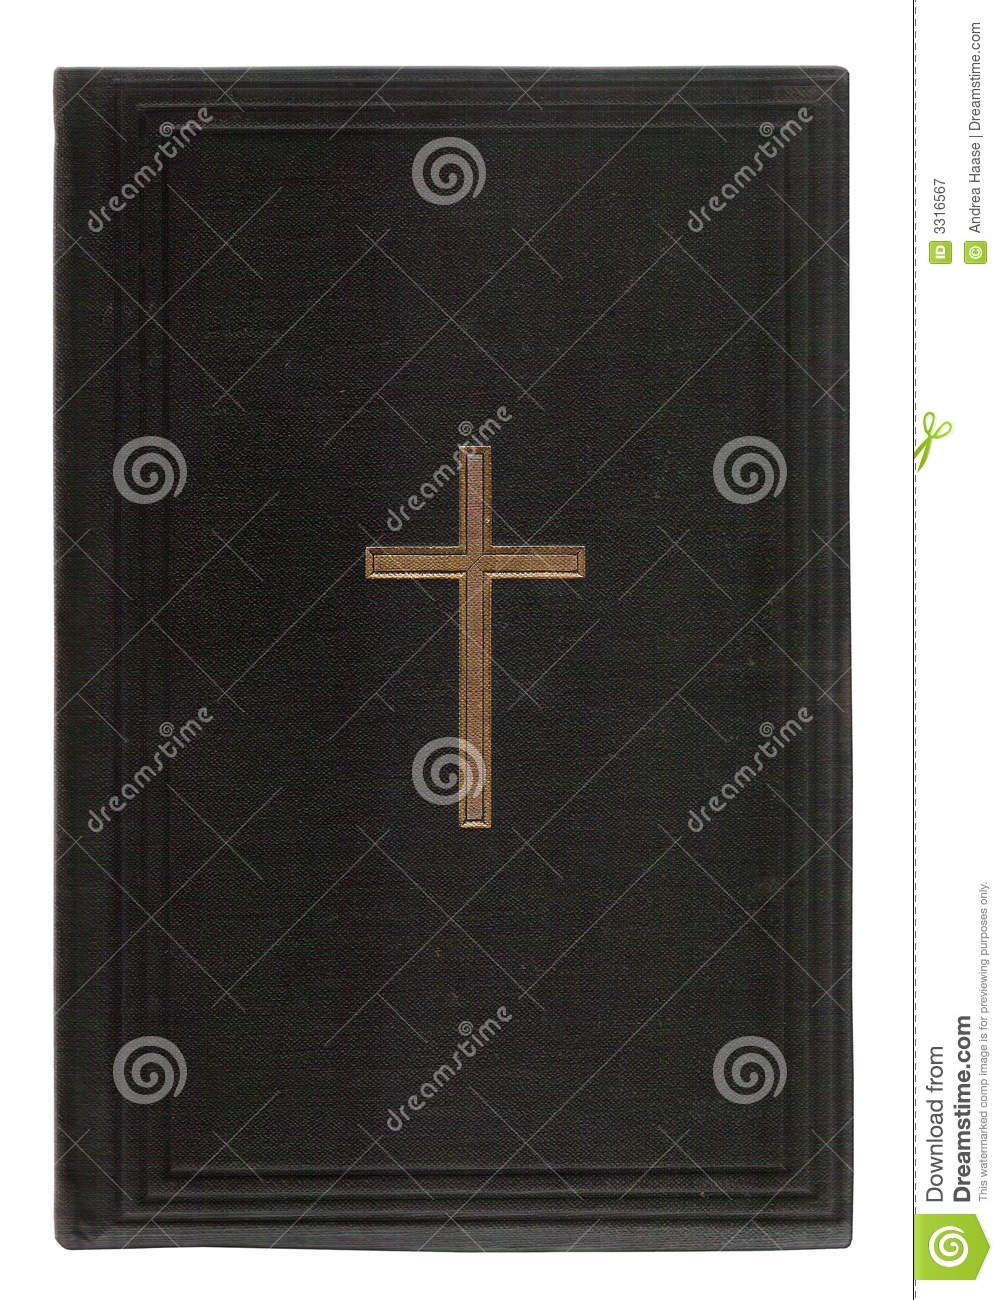 Vintage Leather Look Jeremiah Verse Bible Book Cover Large: Old Bible Book Cover Royalty Free Stock Photography